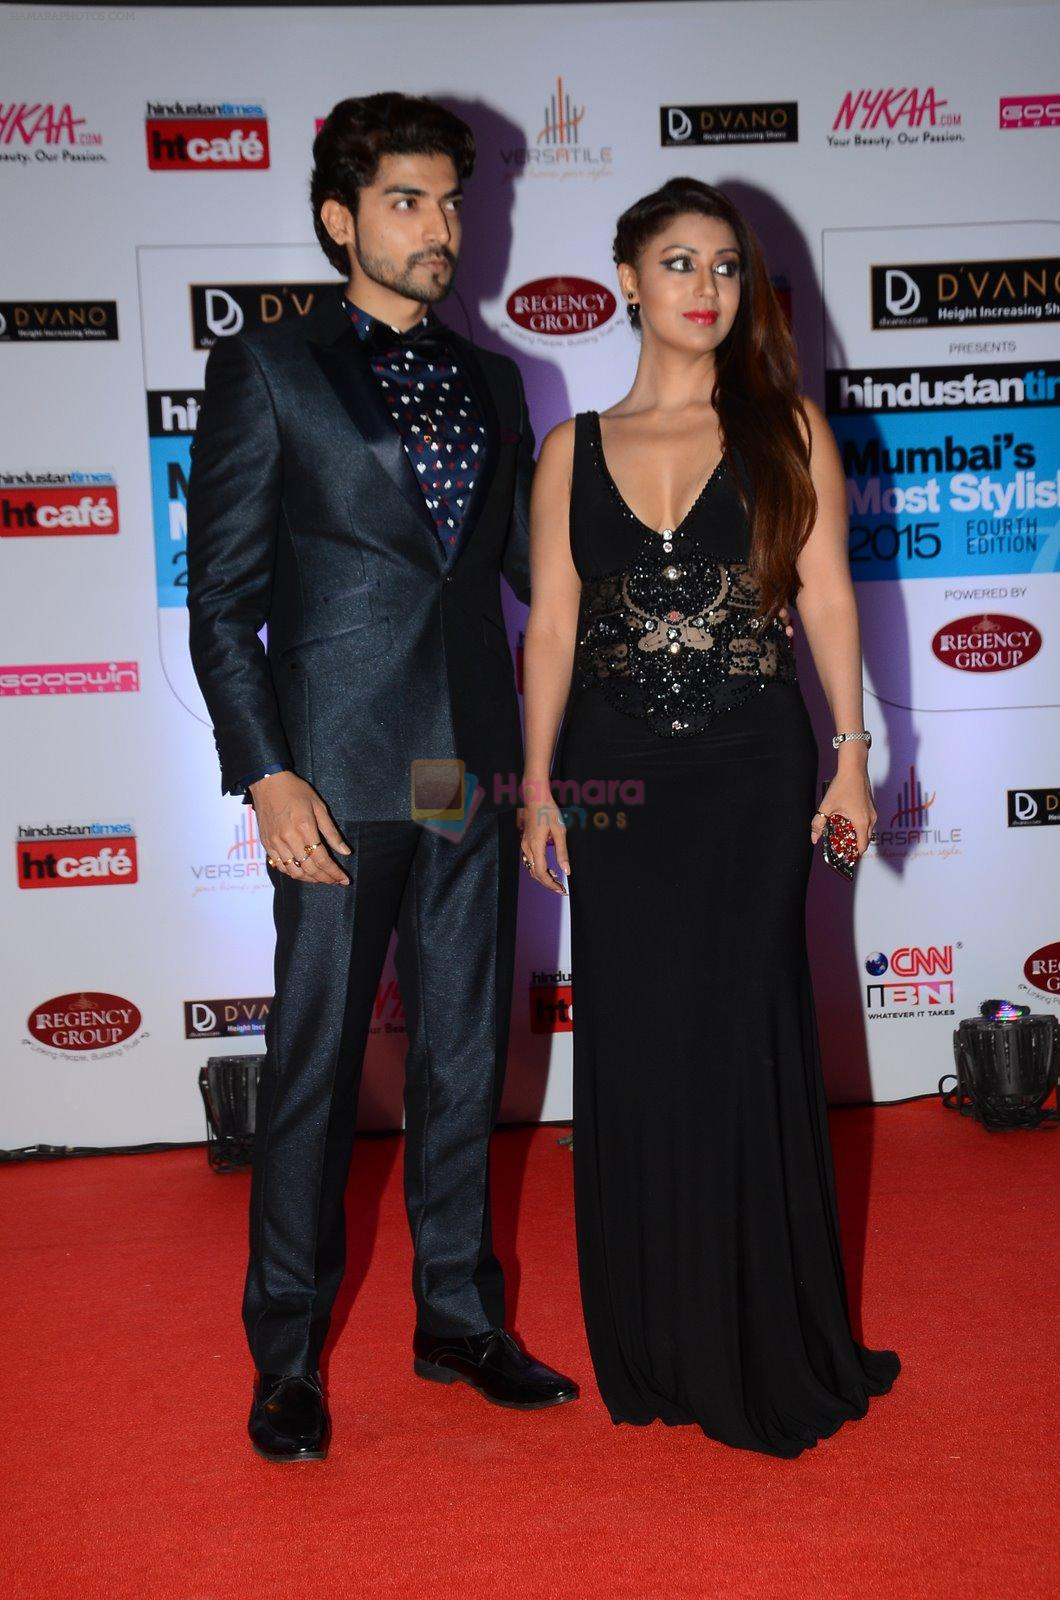 Debina Banerjee, Gurmeet Chaudhary at HT Mumbai's Most Stylish Awards 2015 in Mumbai on 26th March 2015